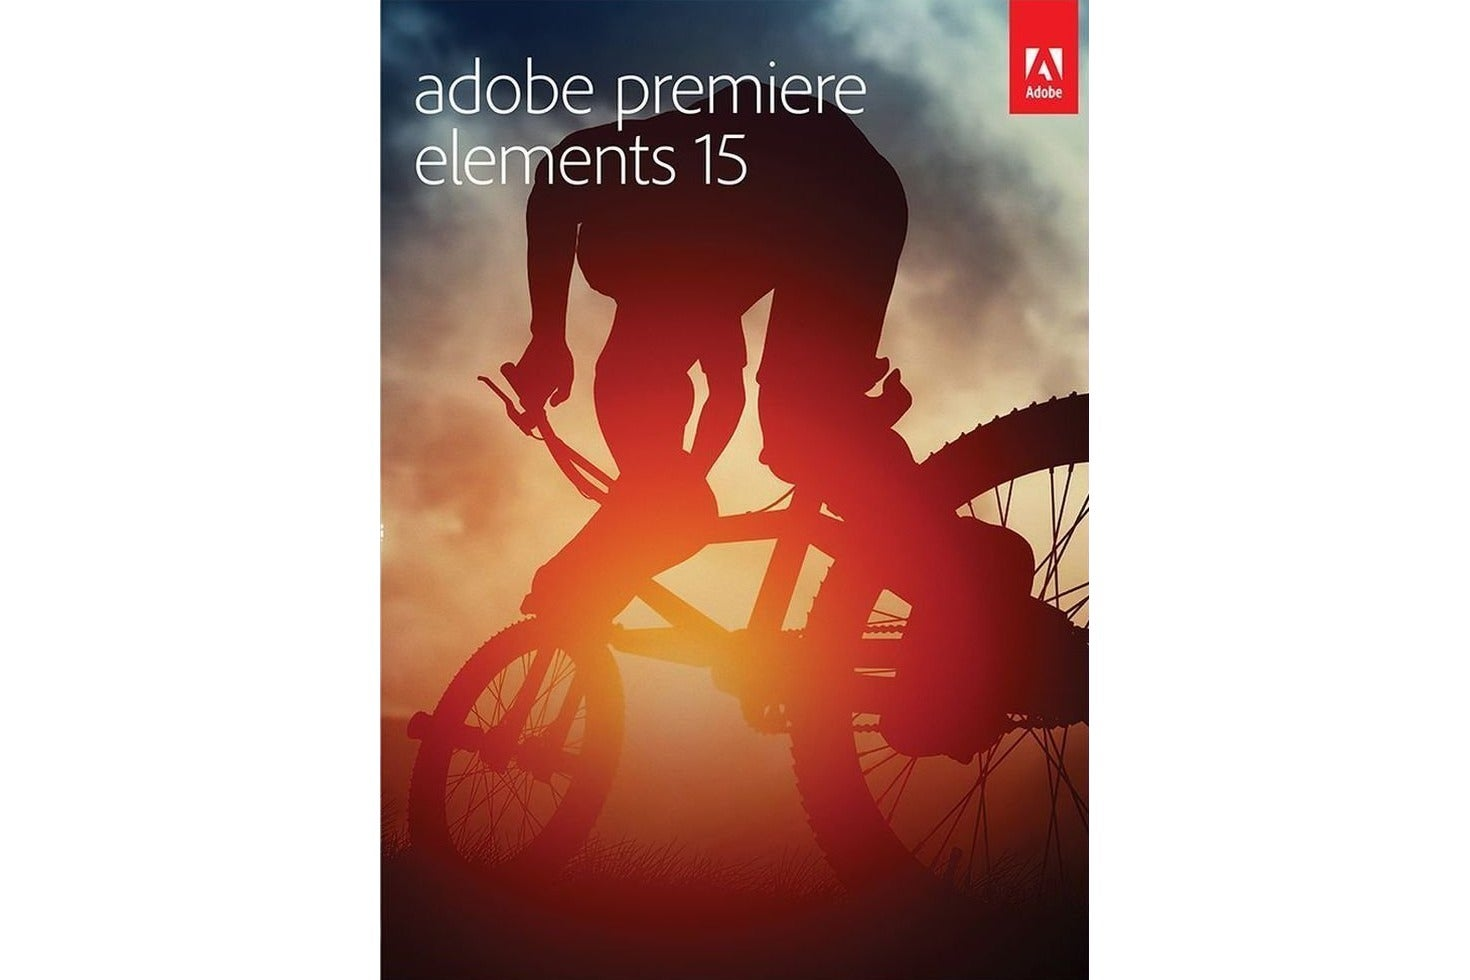 Adobe Premiere Elements 15 Download Mac